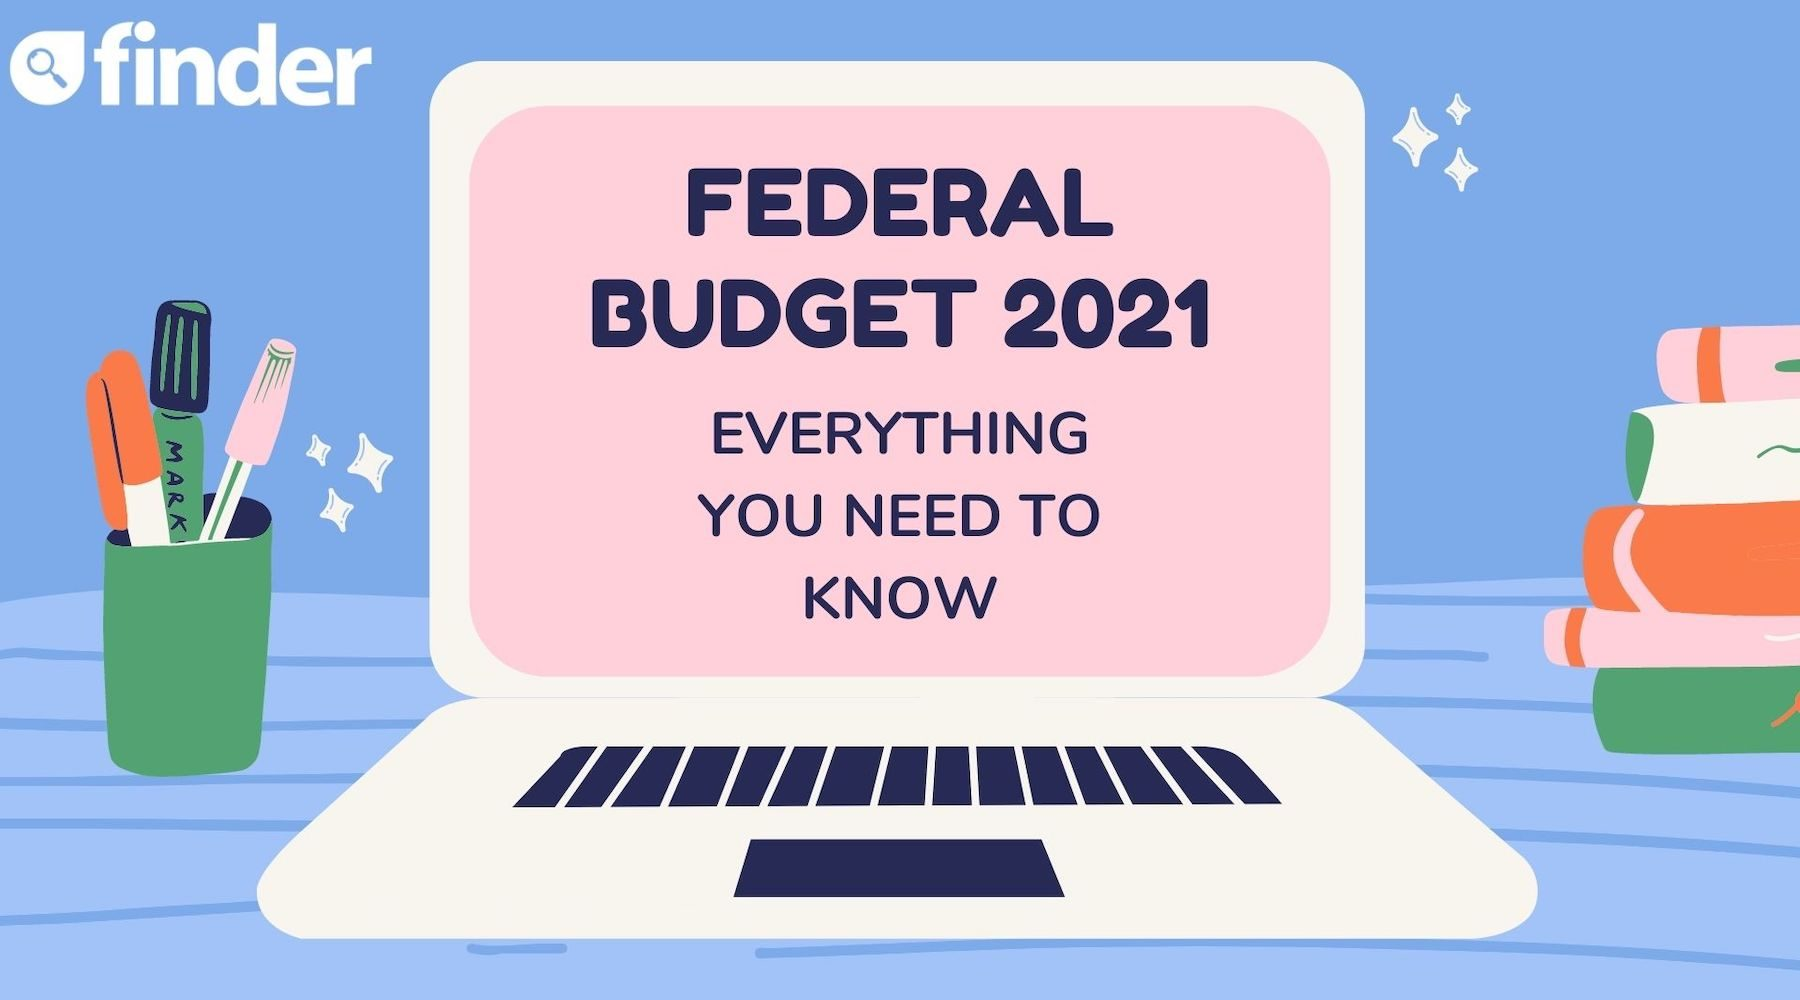 [BREAKING] Budget 2021: What's new and how will it impact you?